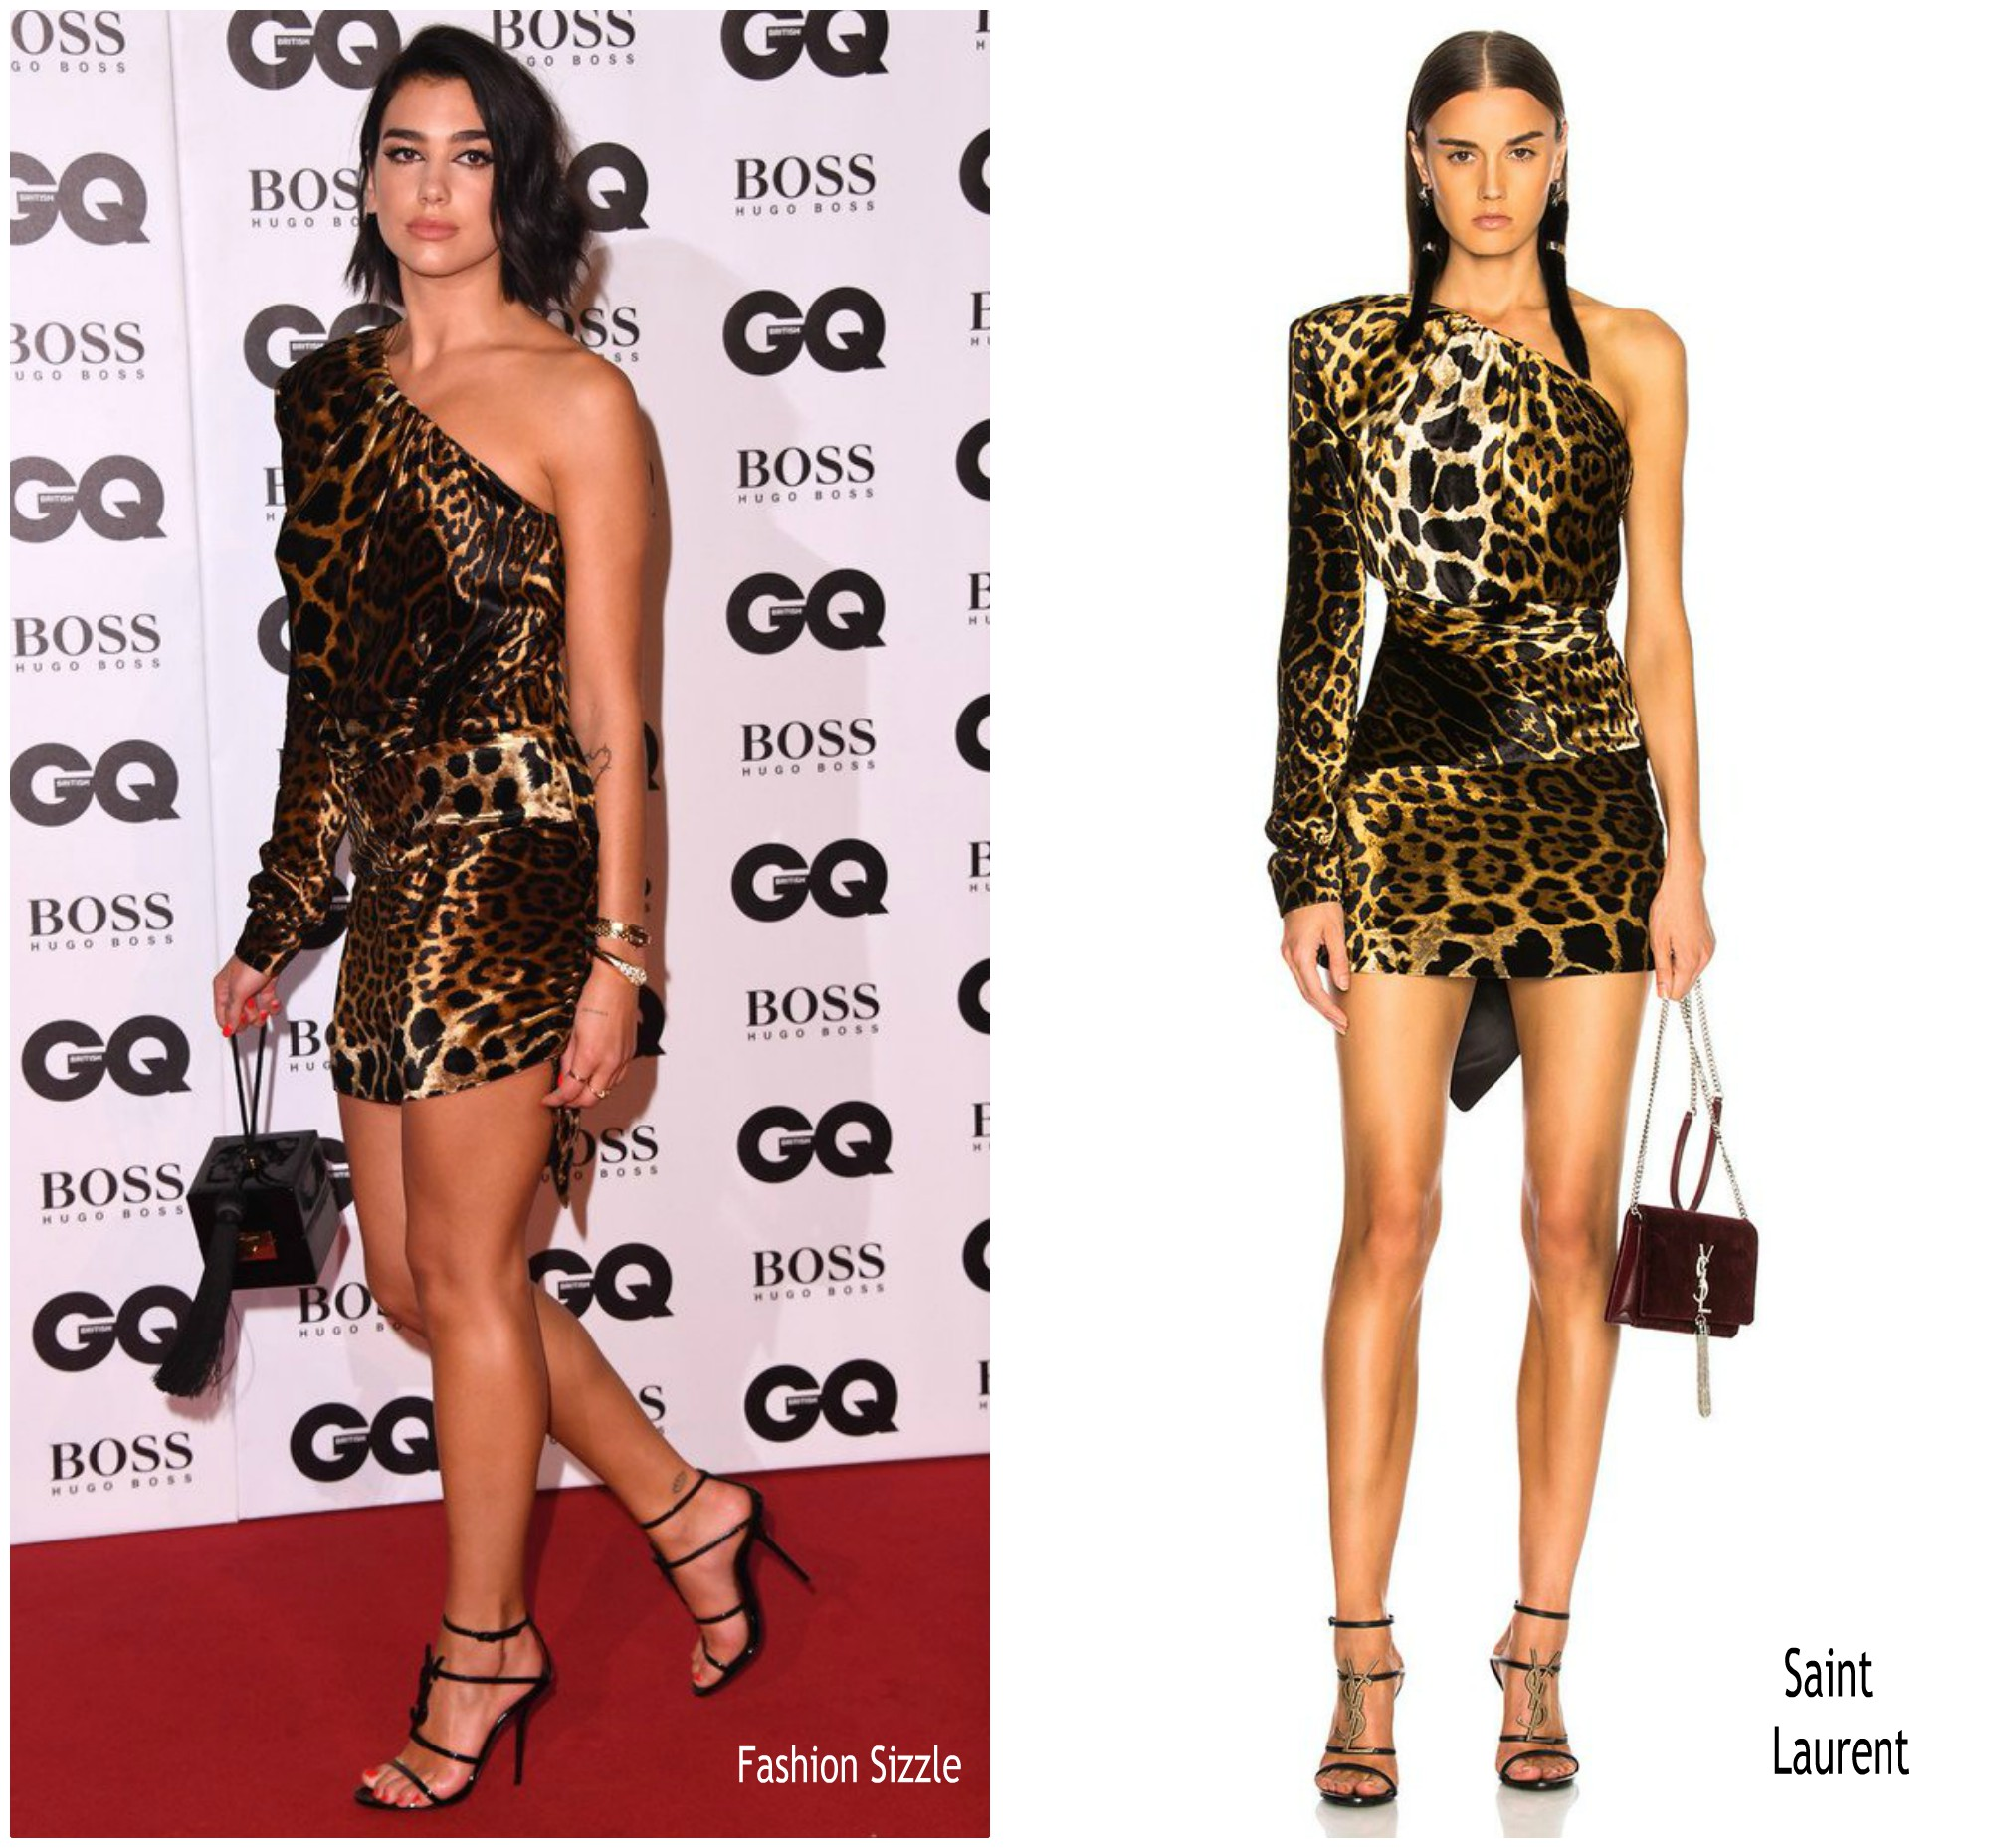 dua-lipa-in-saint-laurent-2018-gq-men-of-the-year-awards-in-london